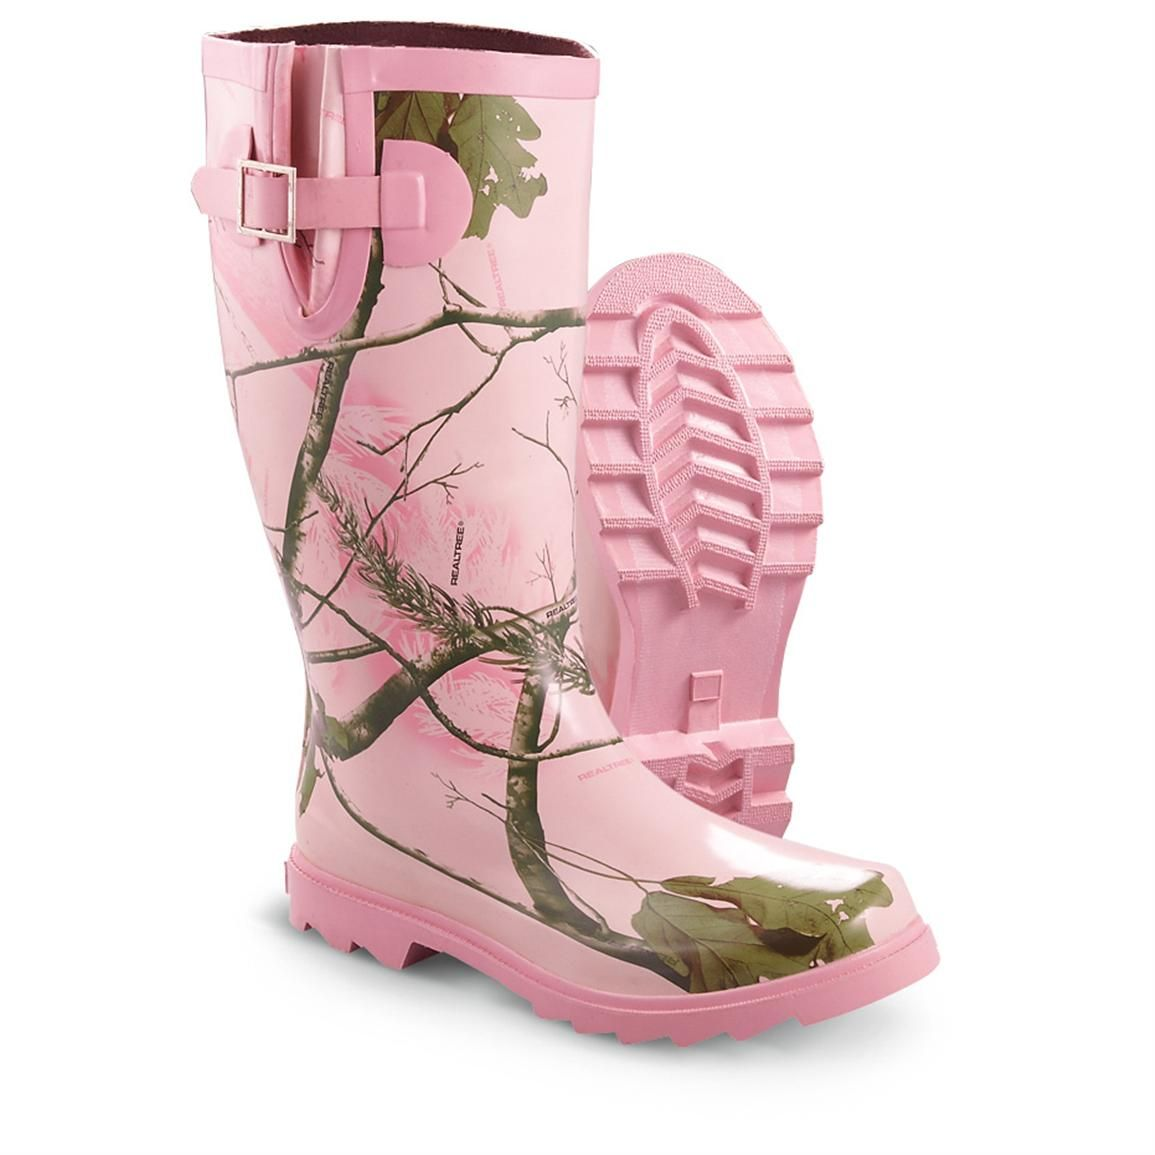 Realtree Girl Women's Ms. JoJo Rain Boots | For women, Rain boots ...